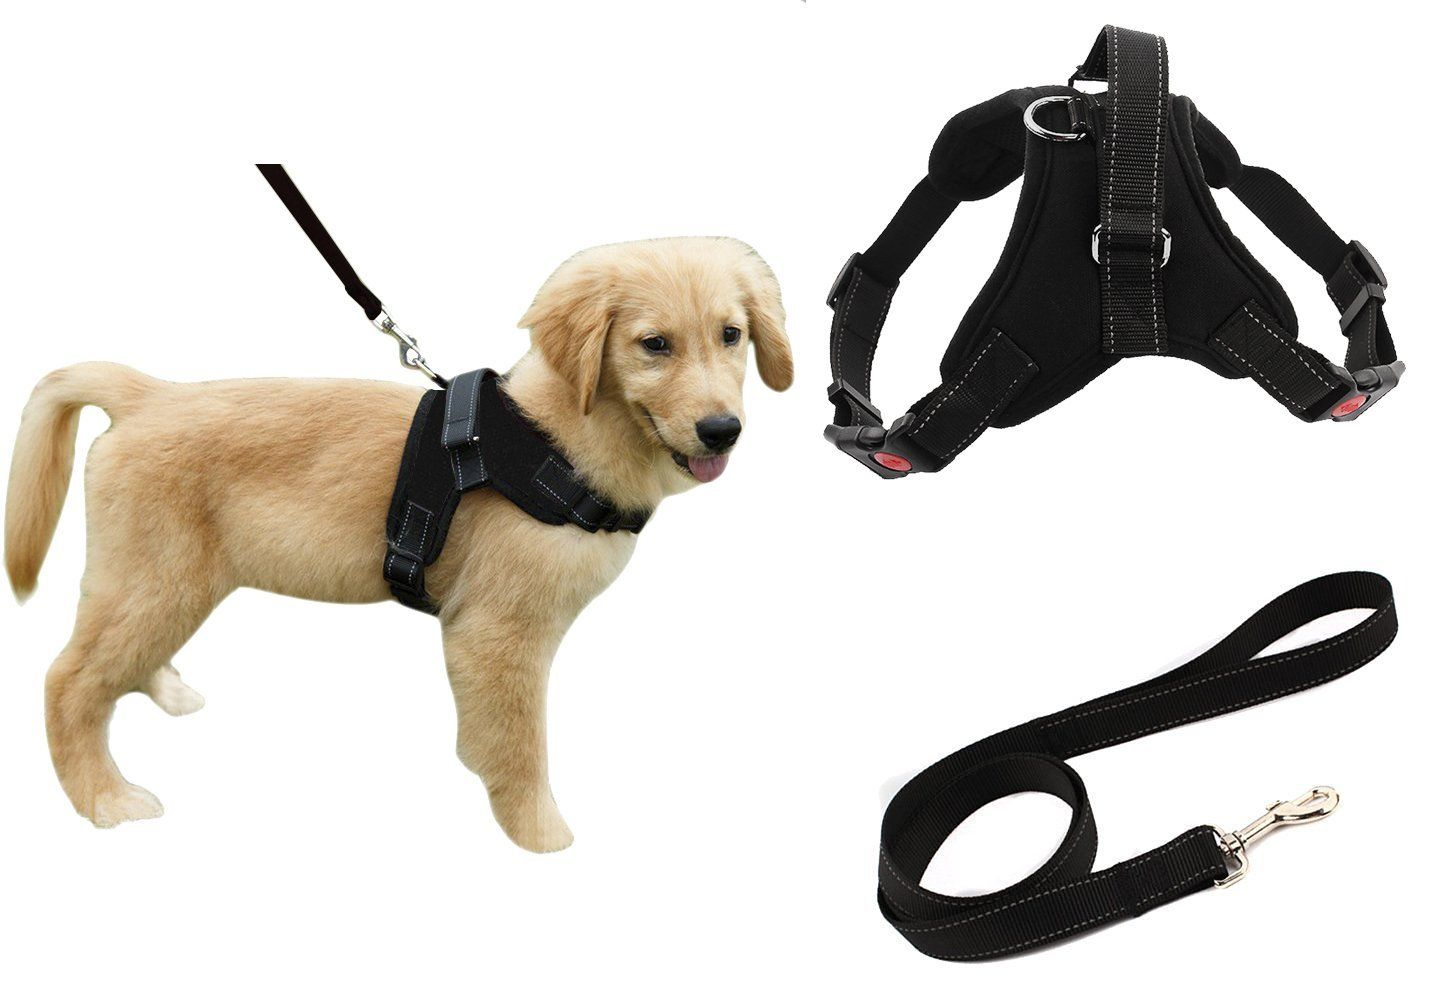 Heavy Duty Adjustable Pet Puppy Dog Safety Harness With Leash Lead